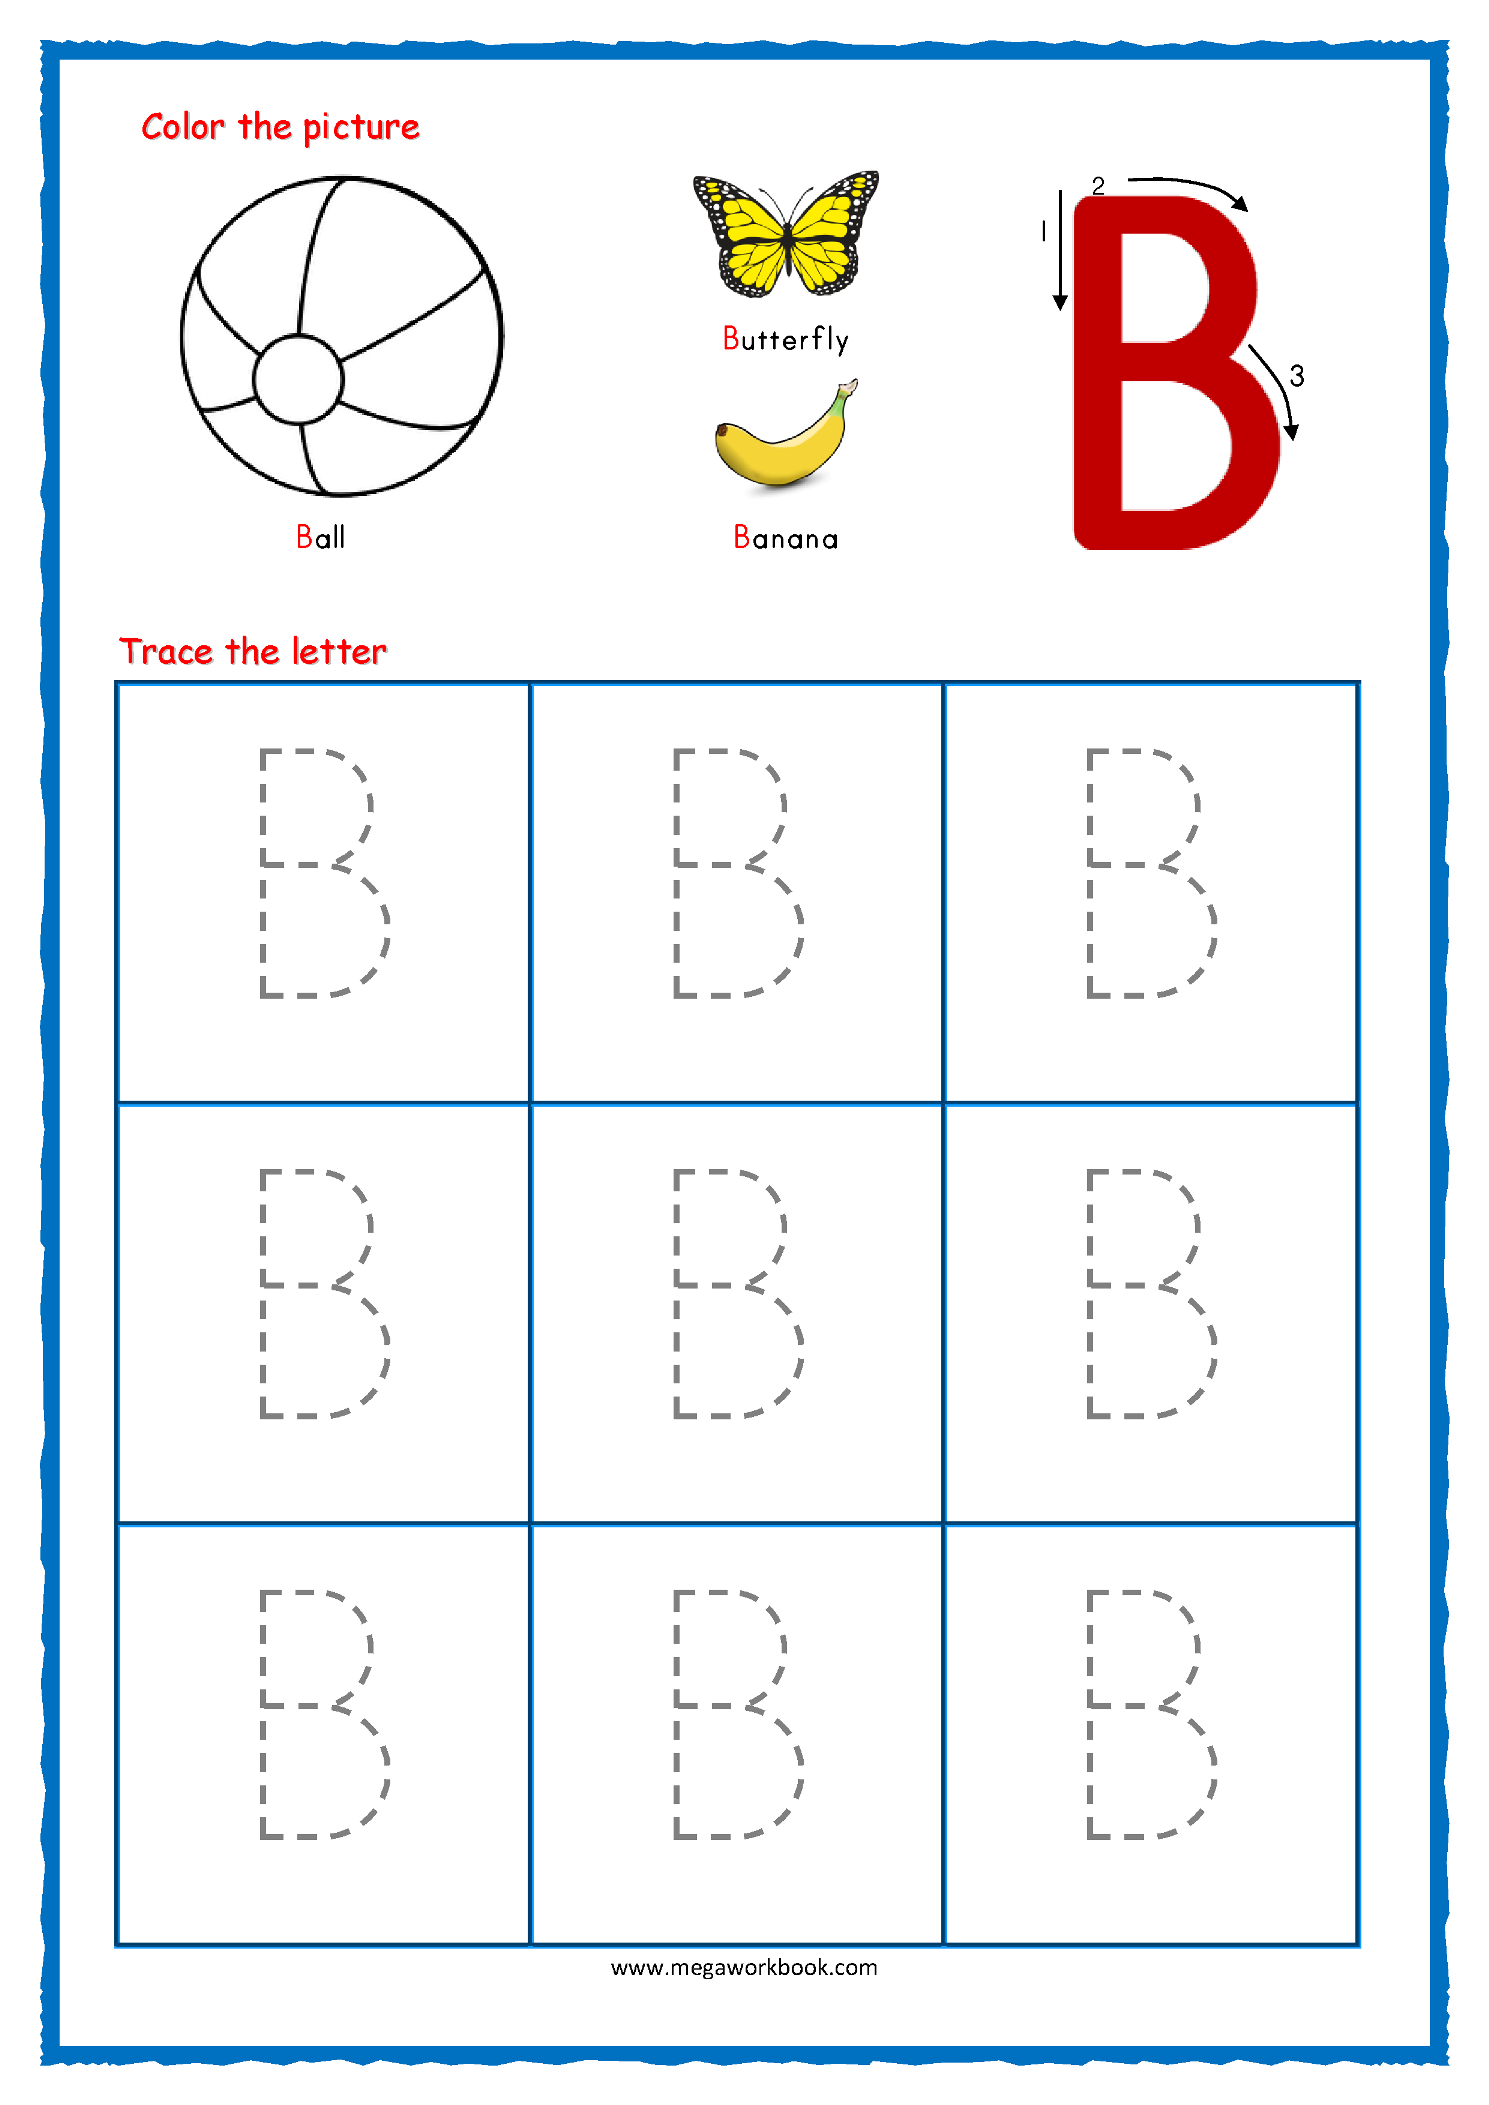 Coloring Book : Letter Tracingts Free Printable Coloring in Tracing Capital Letters Worksheets Pdf